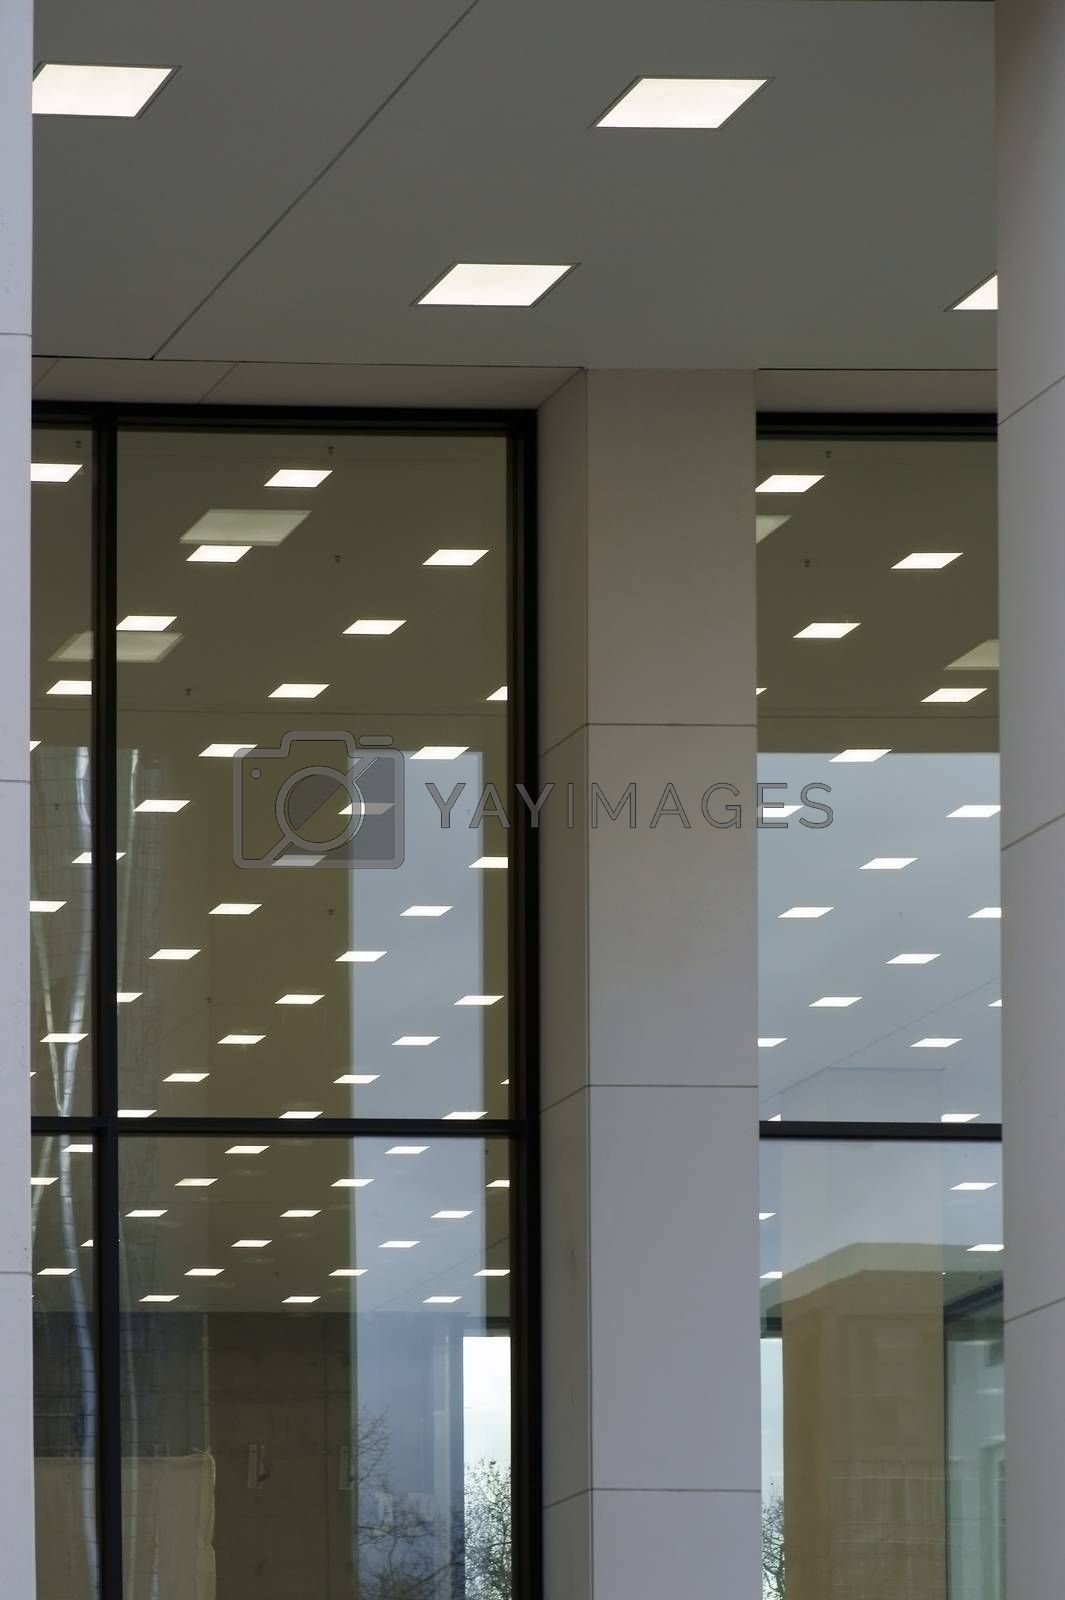 Abstract square ceiling lights are reflected in the glass windows of a panoramic window or storefront.